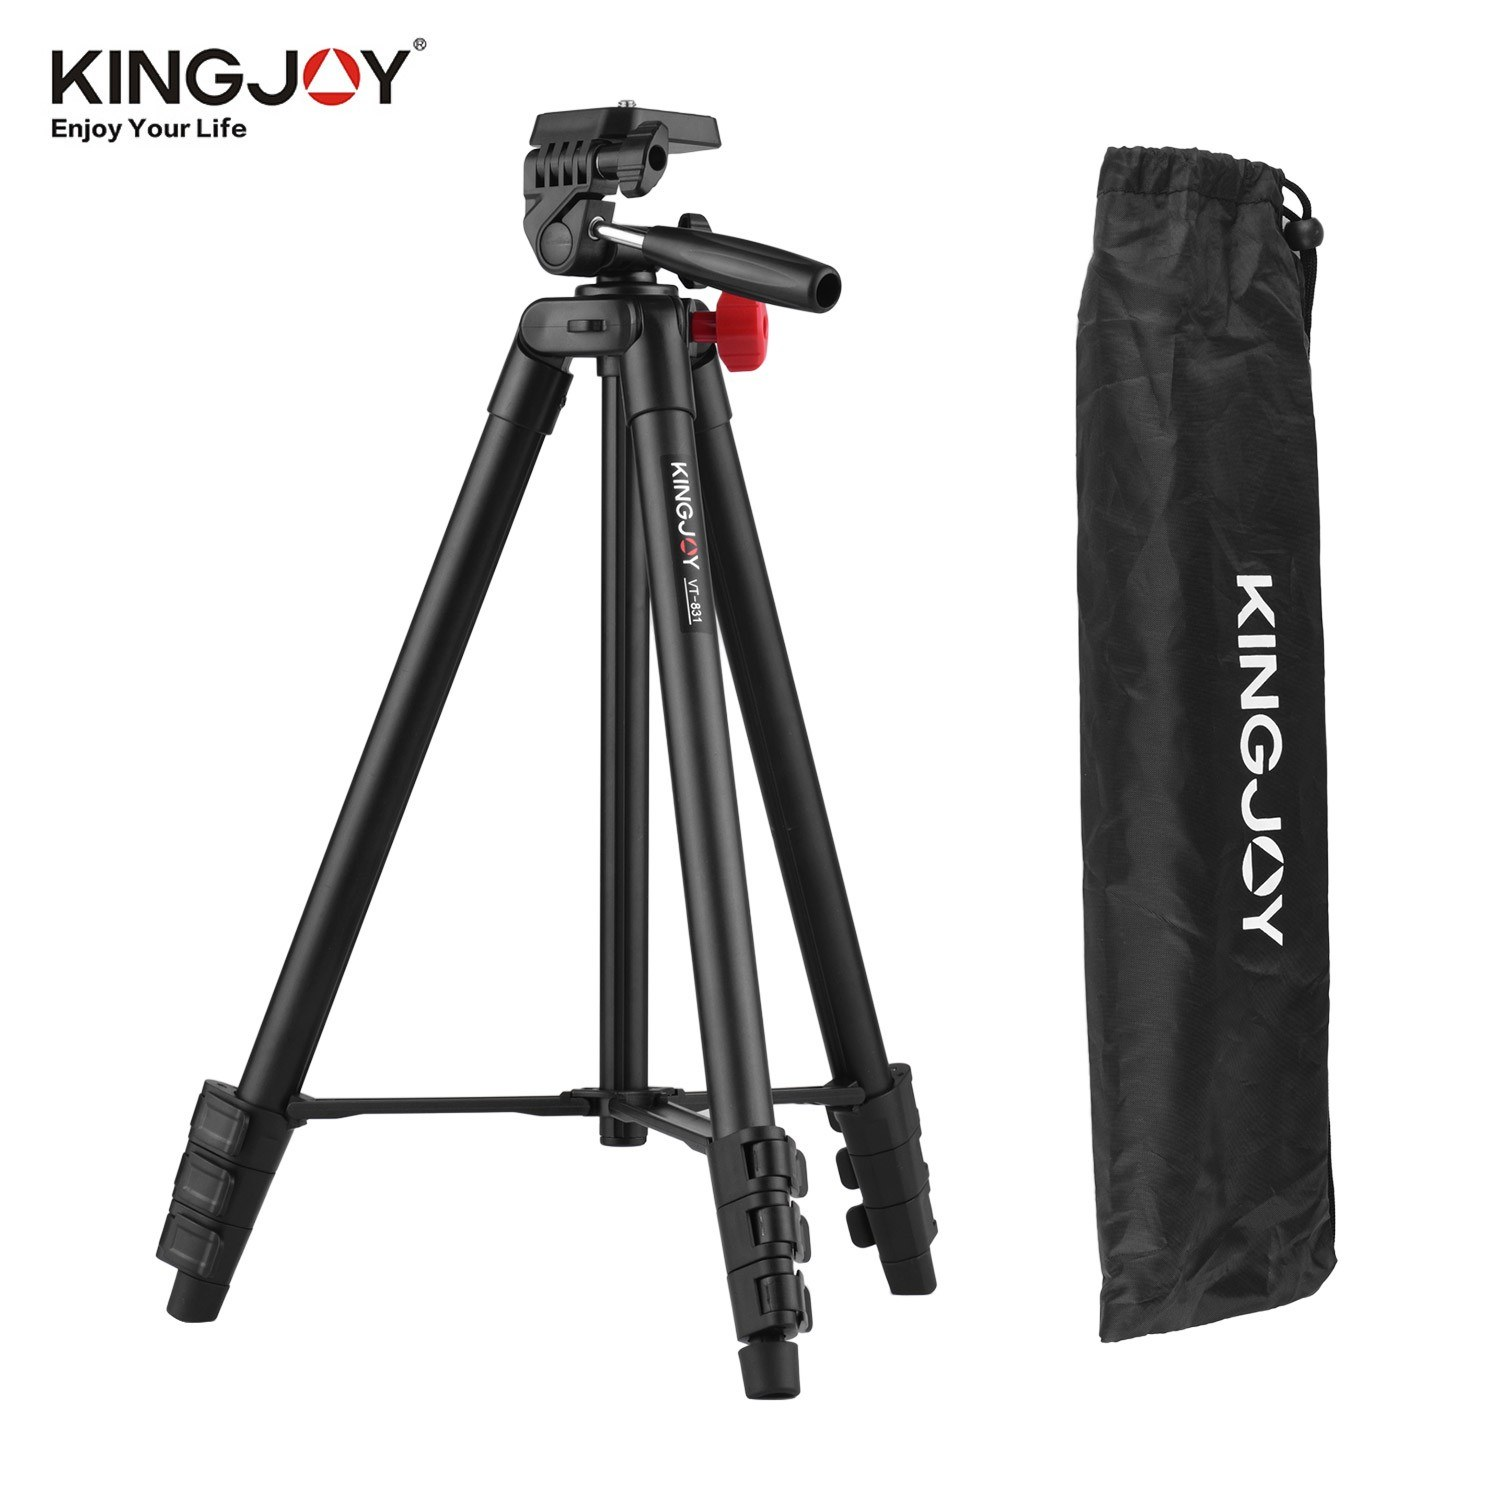 KINGJOY VT-831 Portable Lightweight Photography Tripod Stand Aluminum Alloy 1/4 Inch Screw Connector 2kg Load Capacity Max. Height 135cm with Carry Bag Black